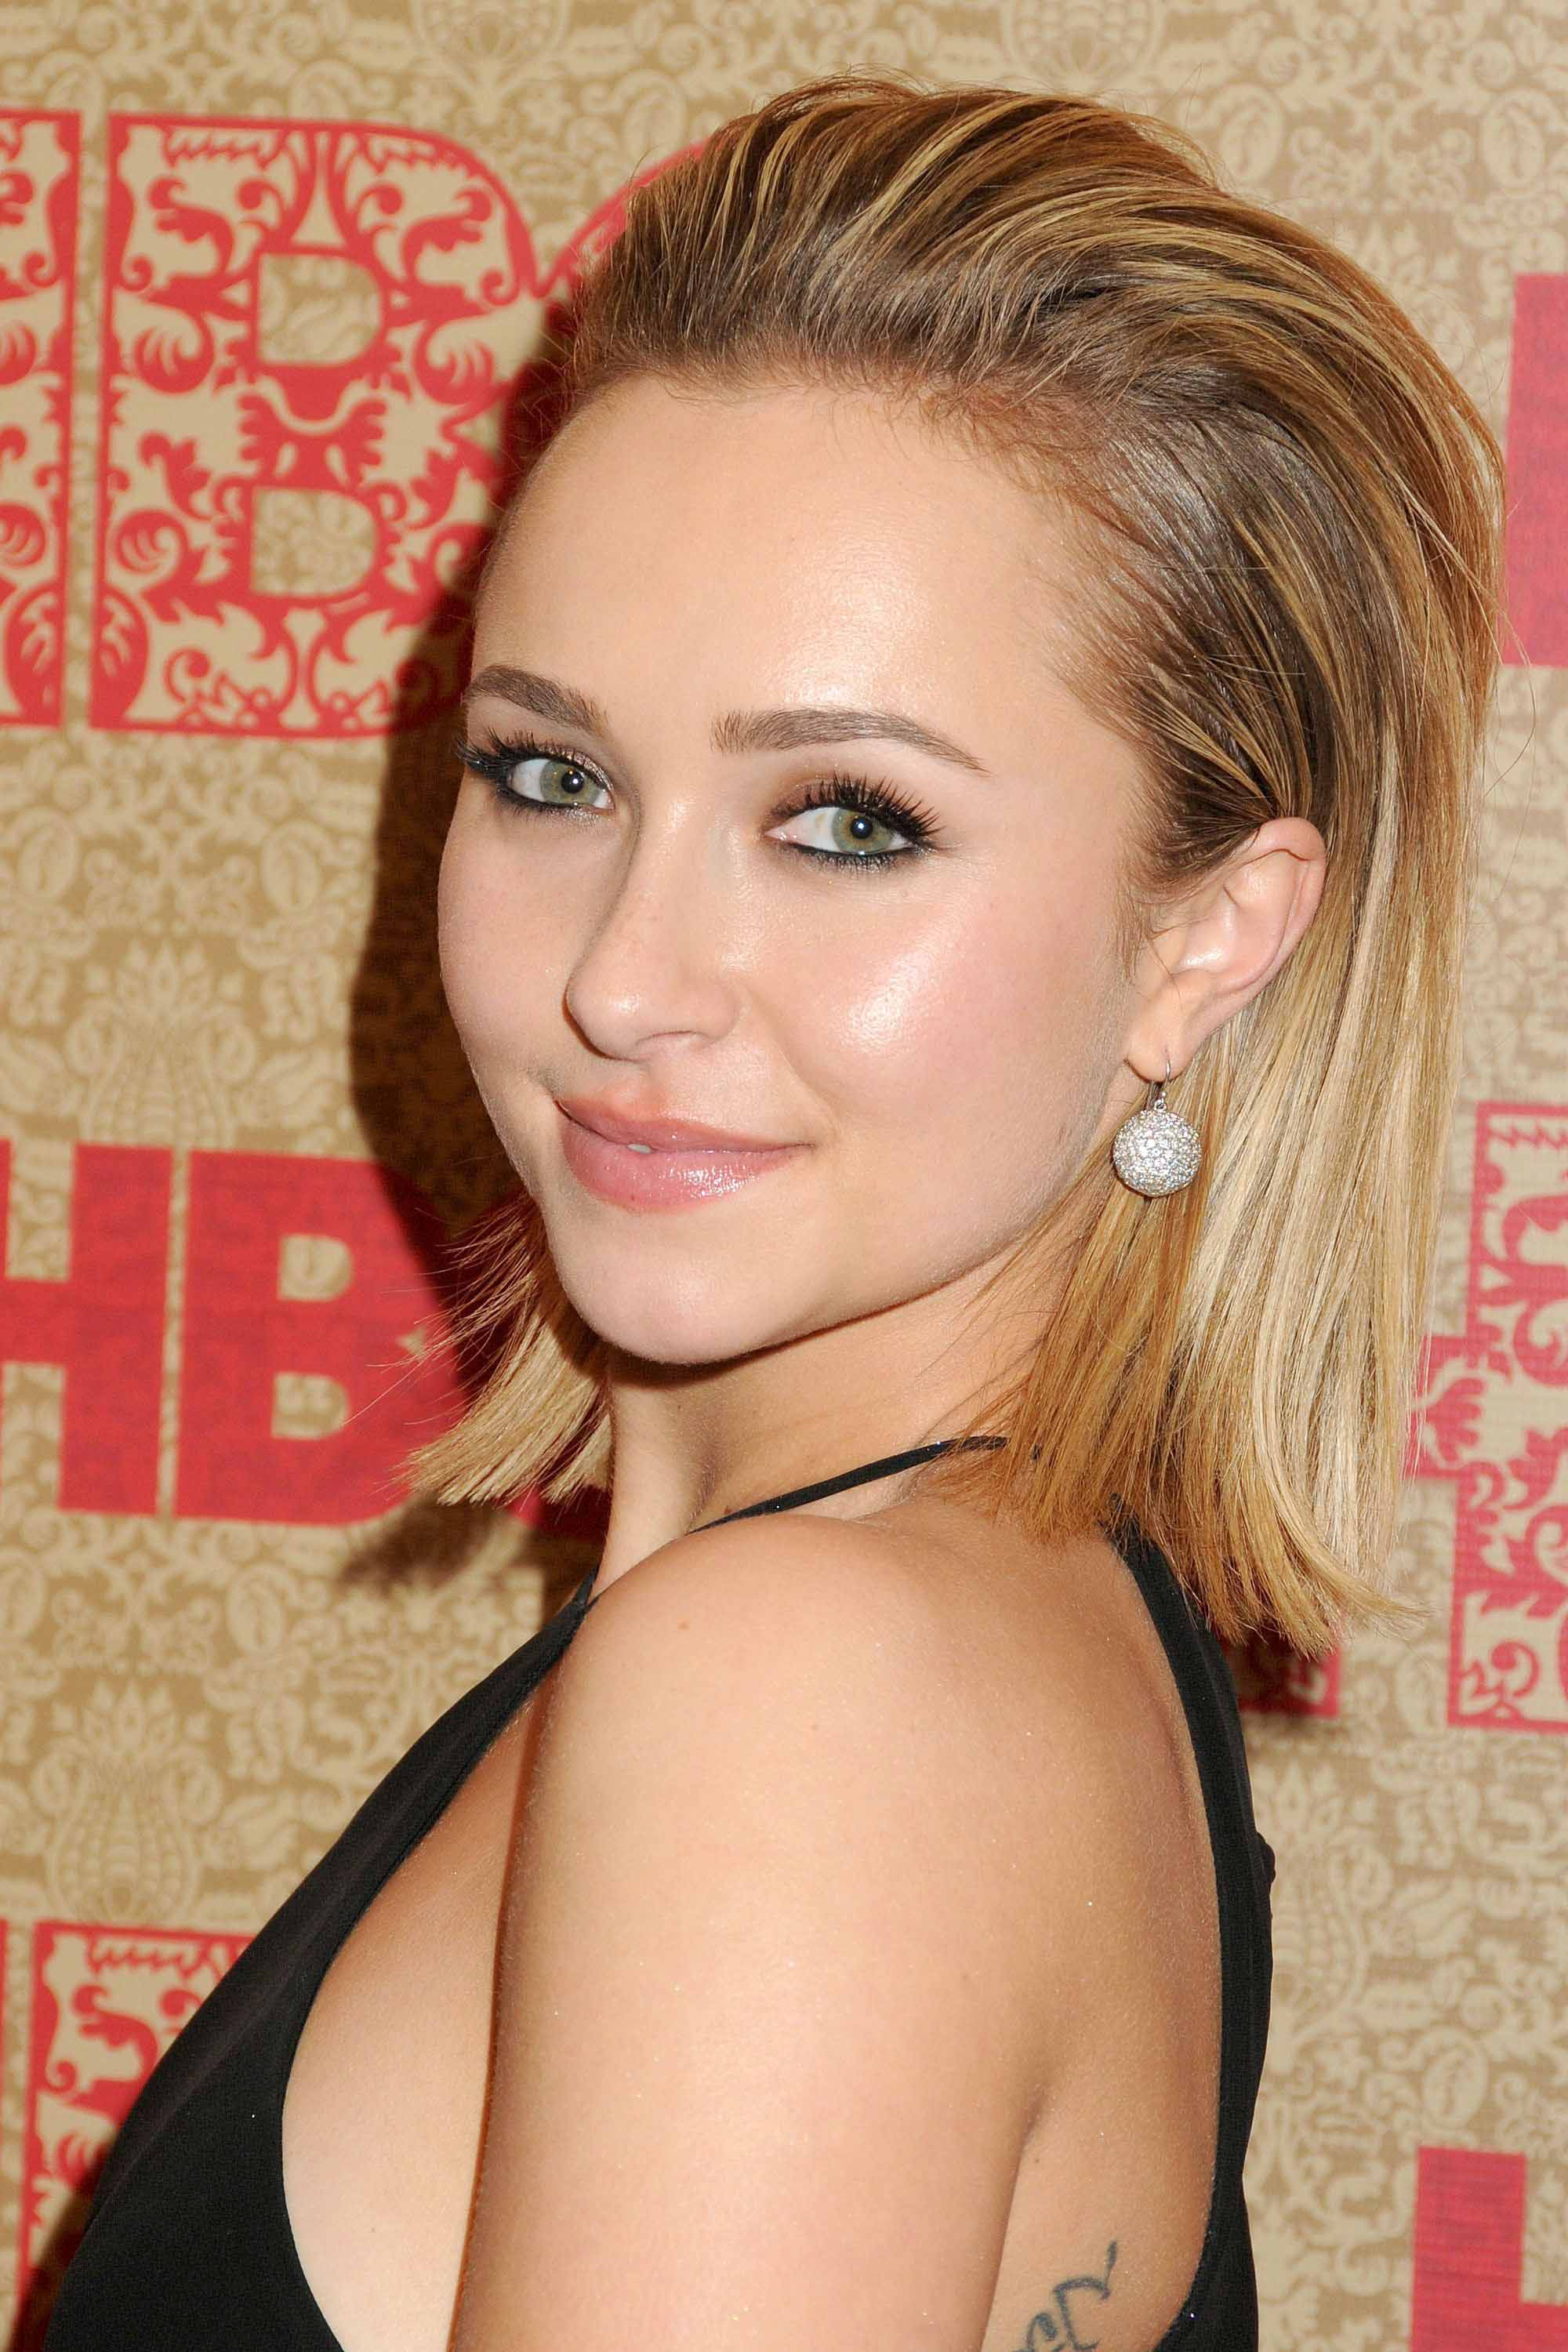 Brown hair with blonde highlights: Hayden Panettiere with slicked back honey blonde bob length hair